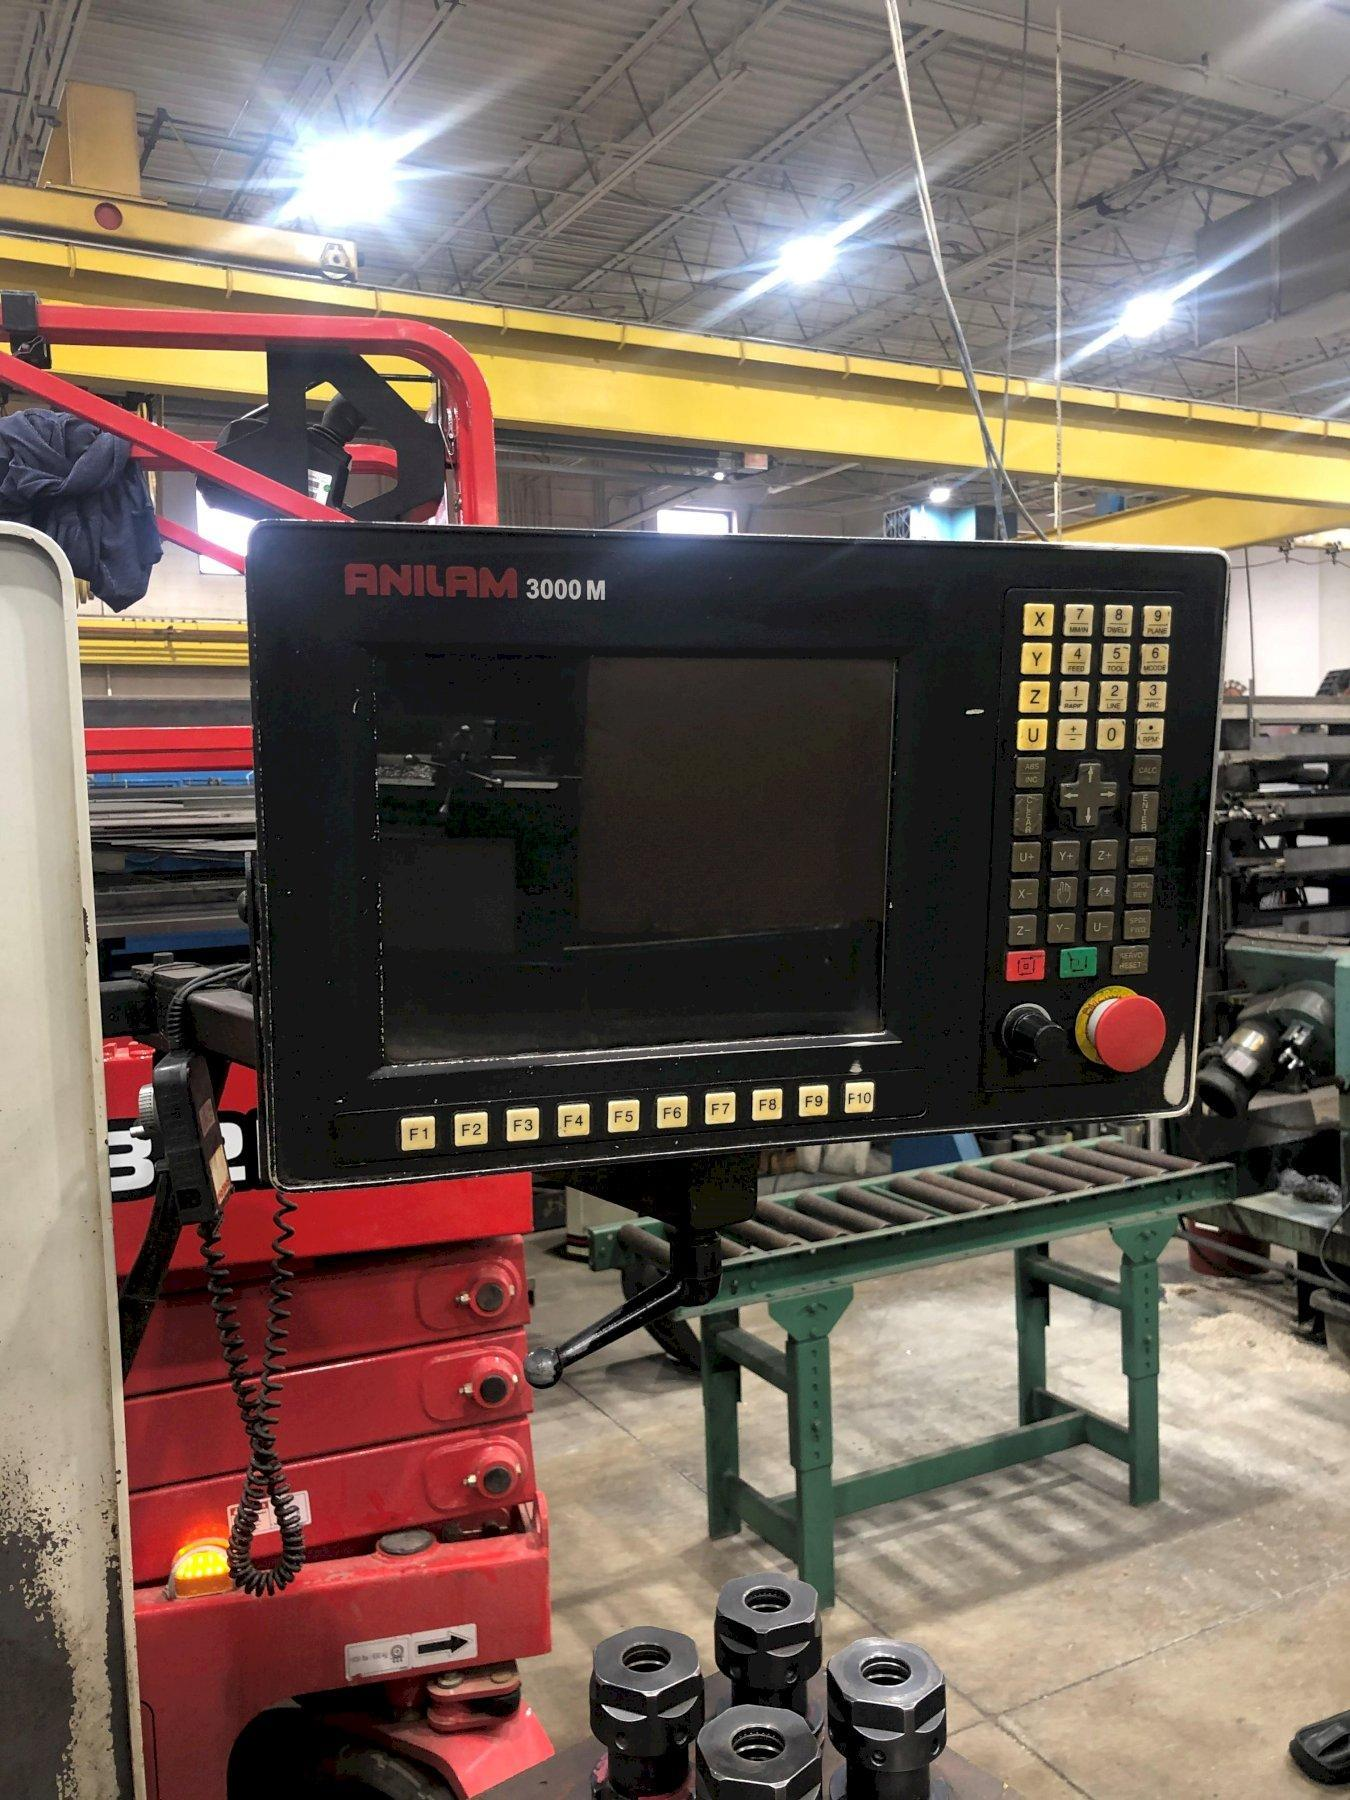 WILLIS Model BTM-40 3-Axis CNC Vertical Bed Milling Machine, New 2006.